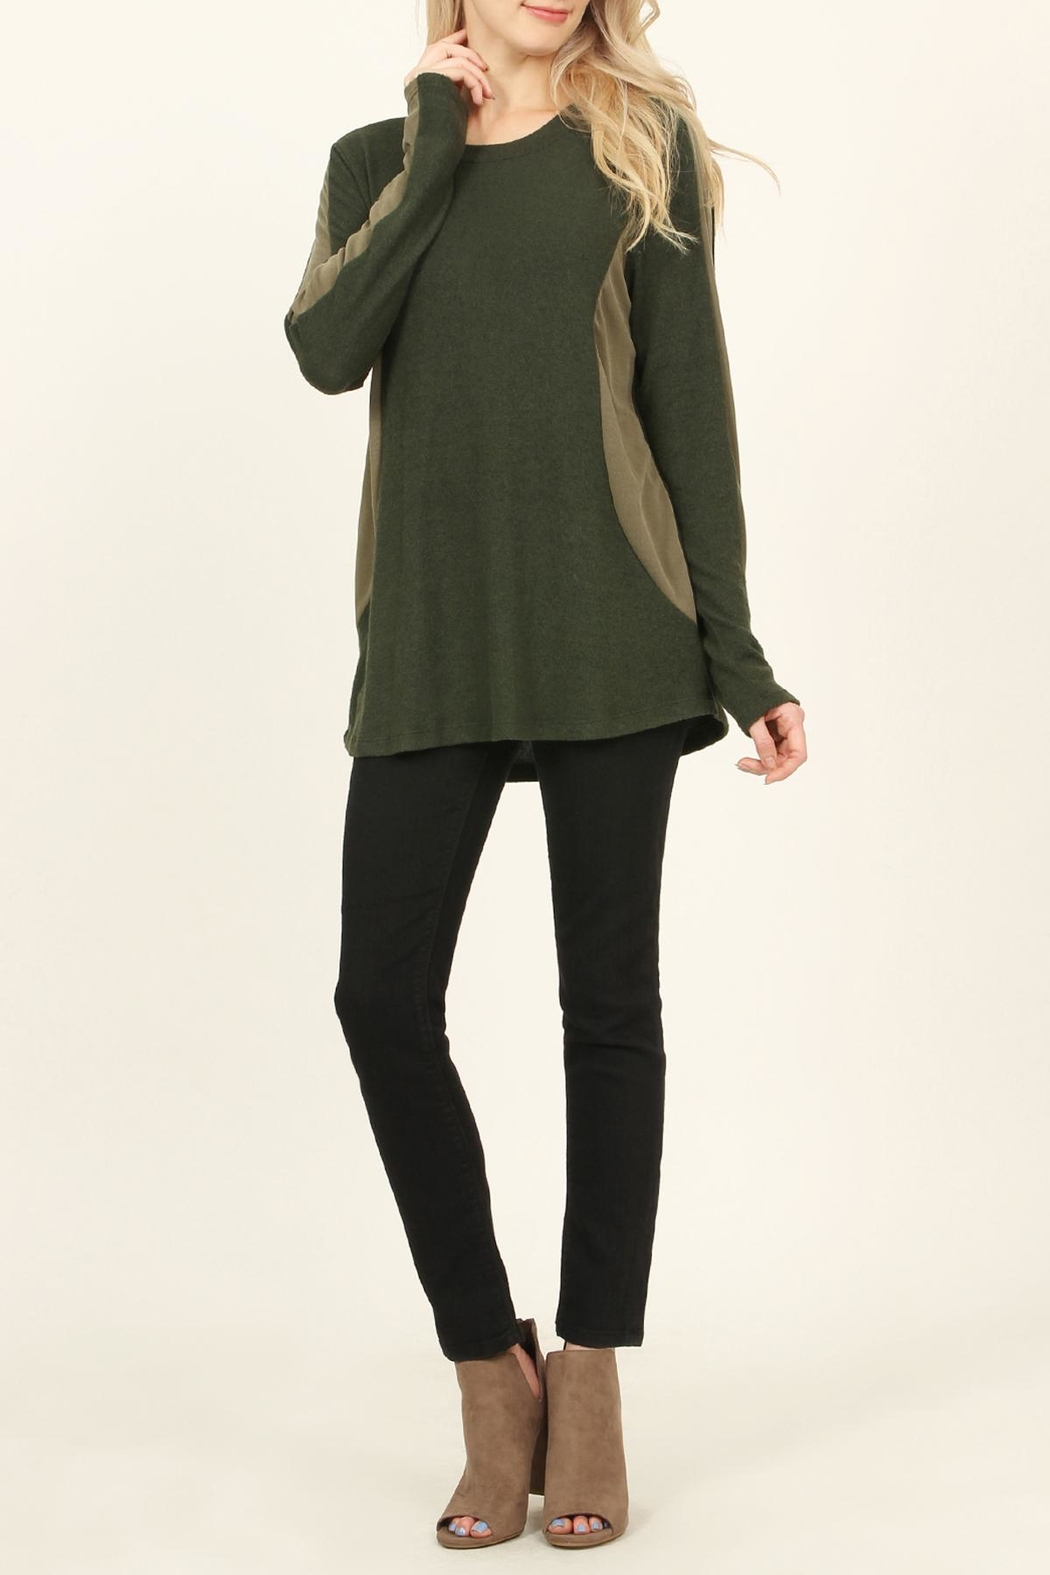 Riah Fashion Two-Tone-Side & Sleeve-Accented-Sweater - Main Image